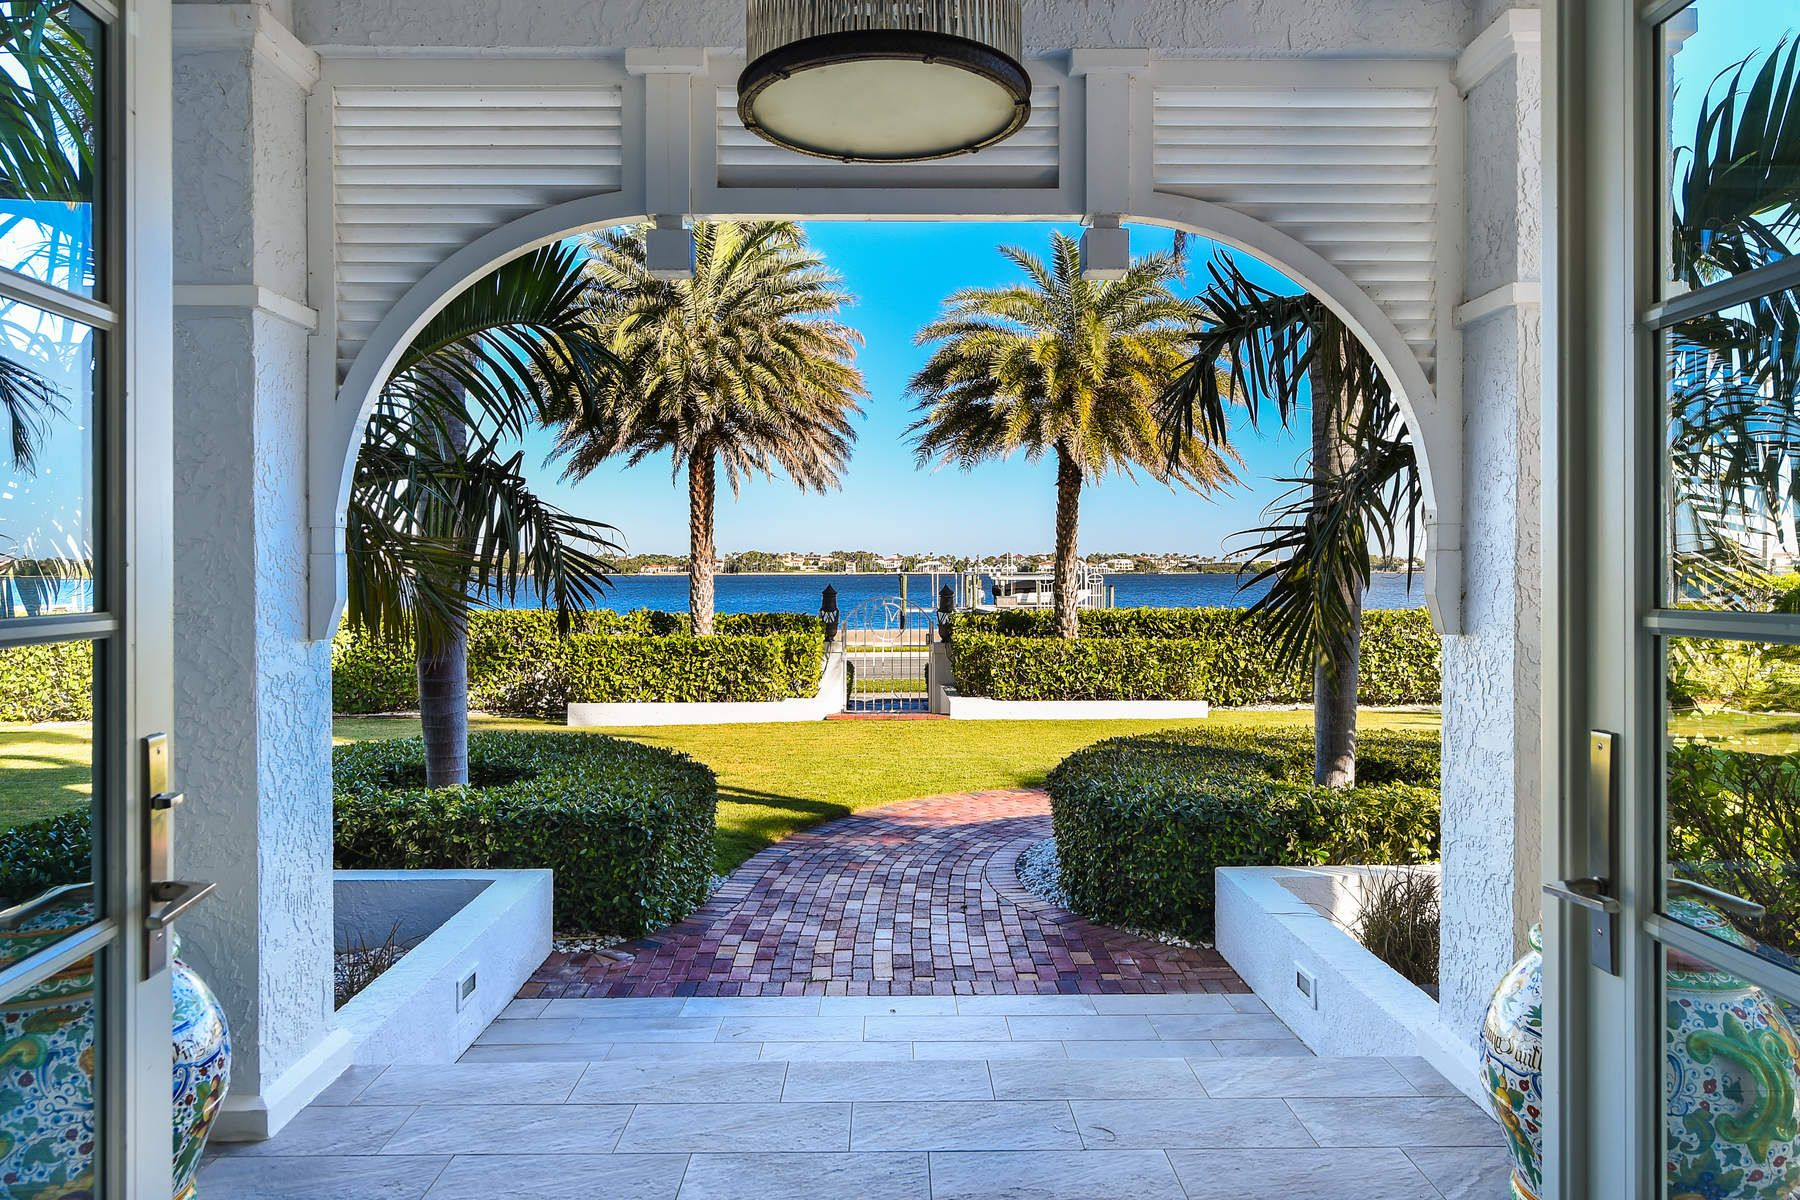 Single Family Home for Sale at Magnificent Waterfront Home 5615 S Flagler Dr West Palm Beach, Florida 33405 United States